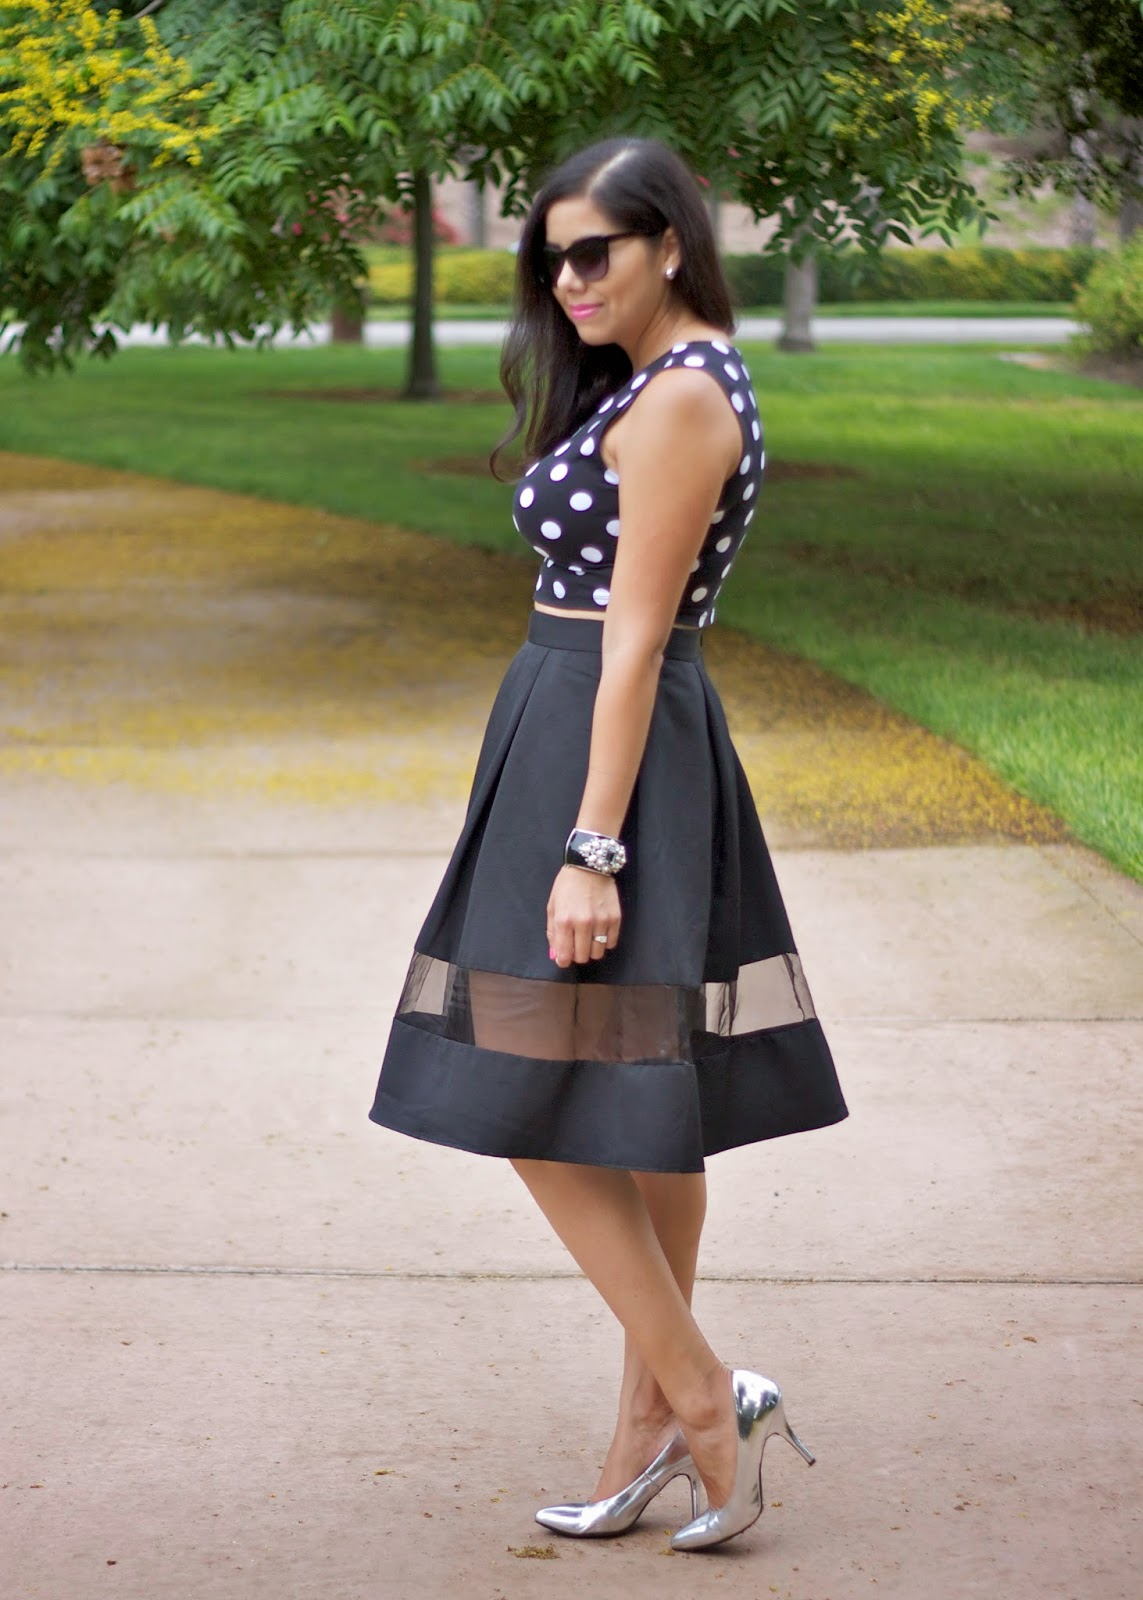 Express Midi skirt with sheer panel, black midi skirt with silver heels, midi skirt with sheer panel, classy but sexy outfit for date night